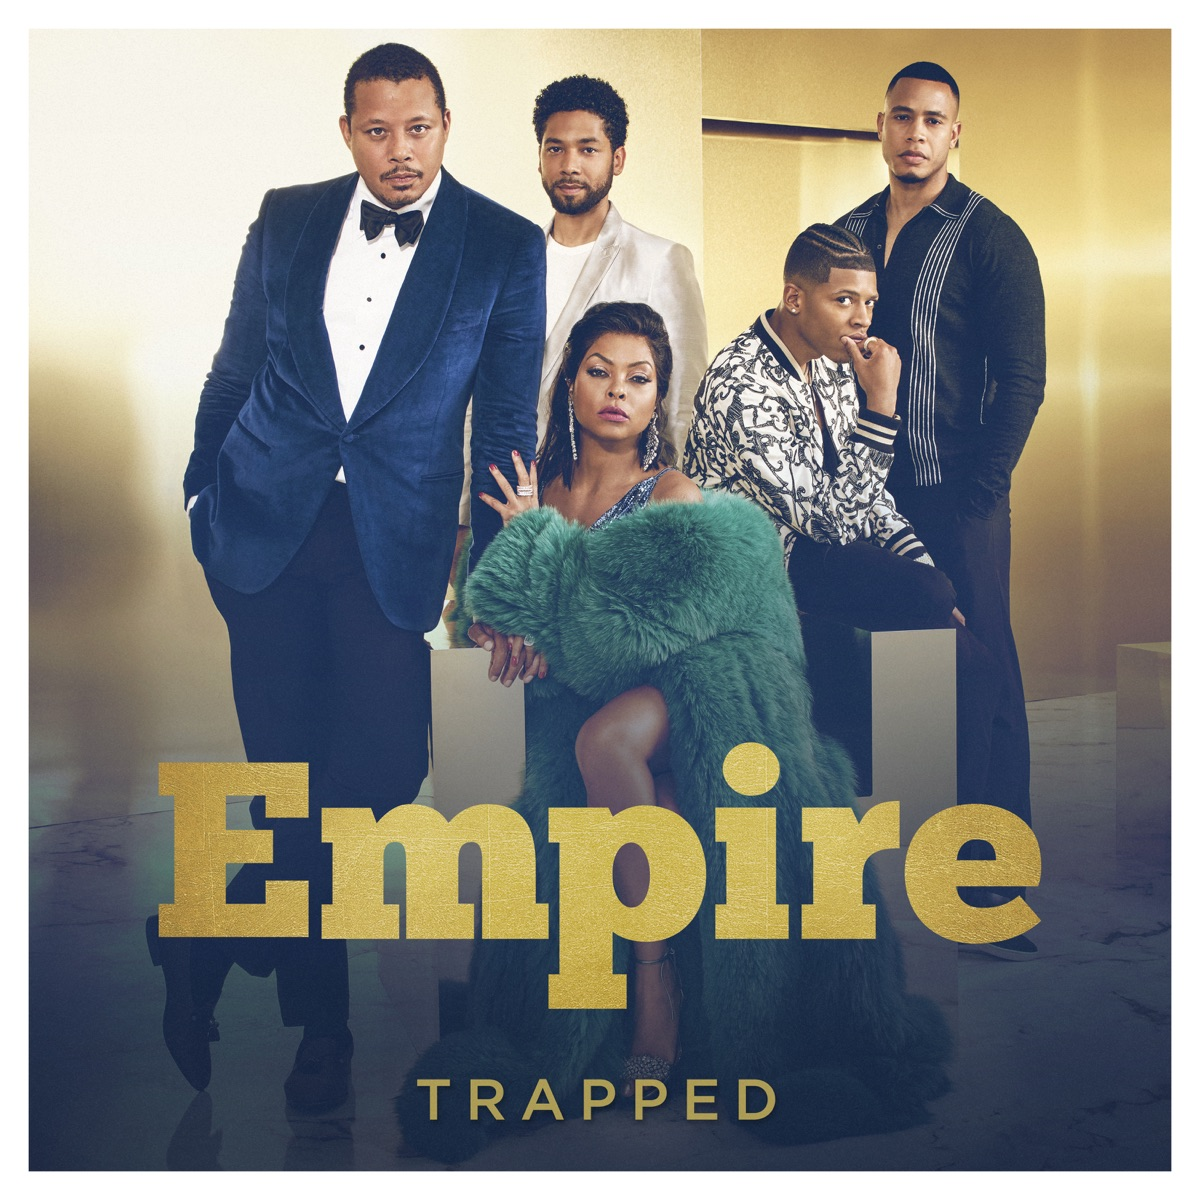 Trapped Album Cover by Empire Cast